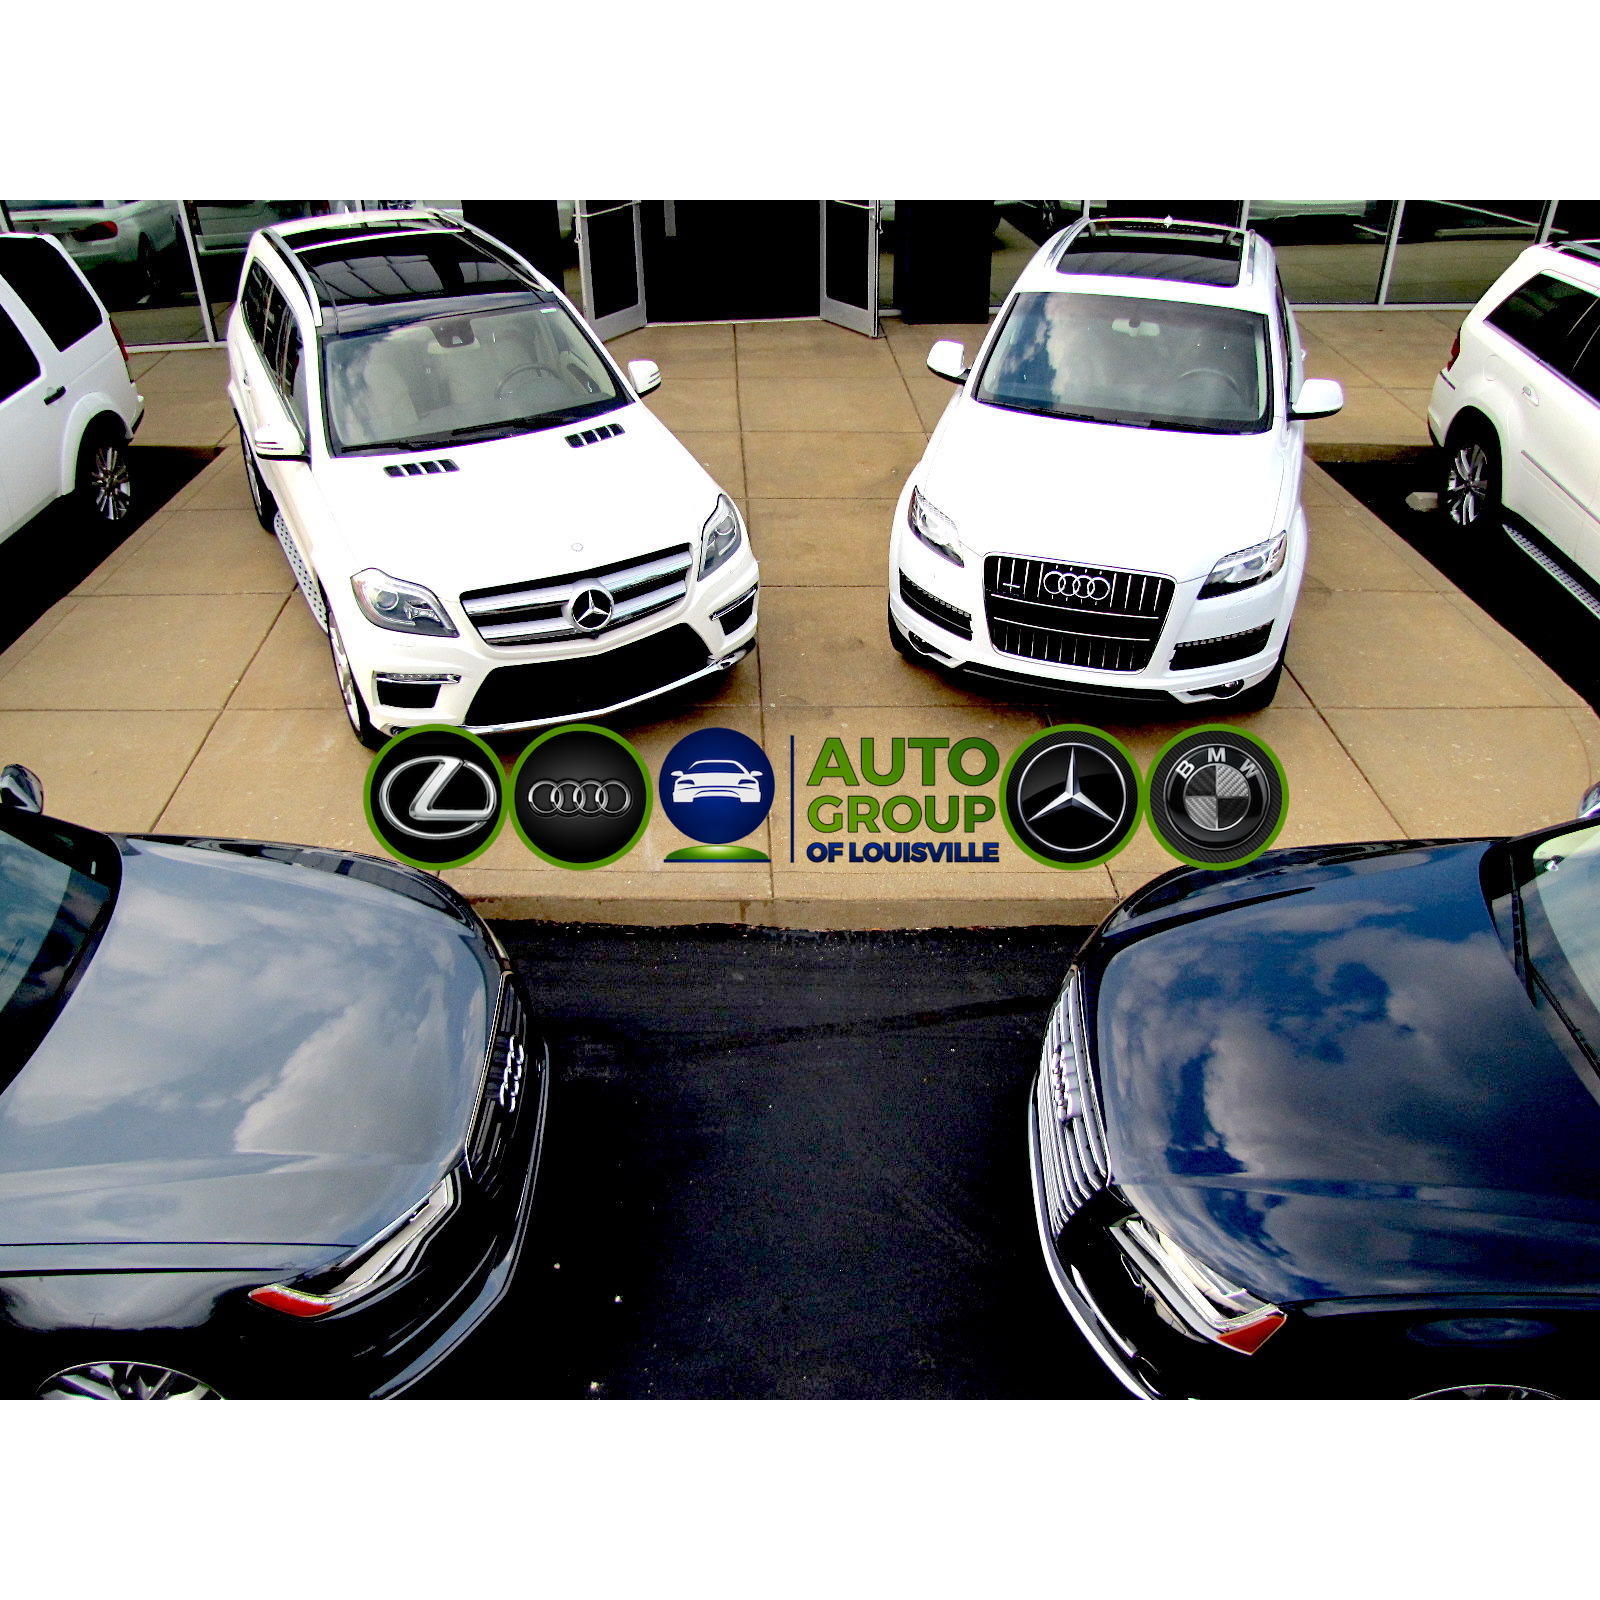 Auto Group of Louisville